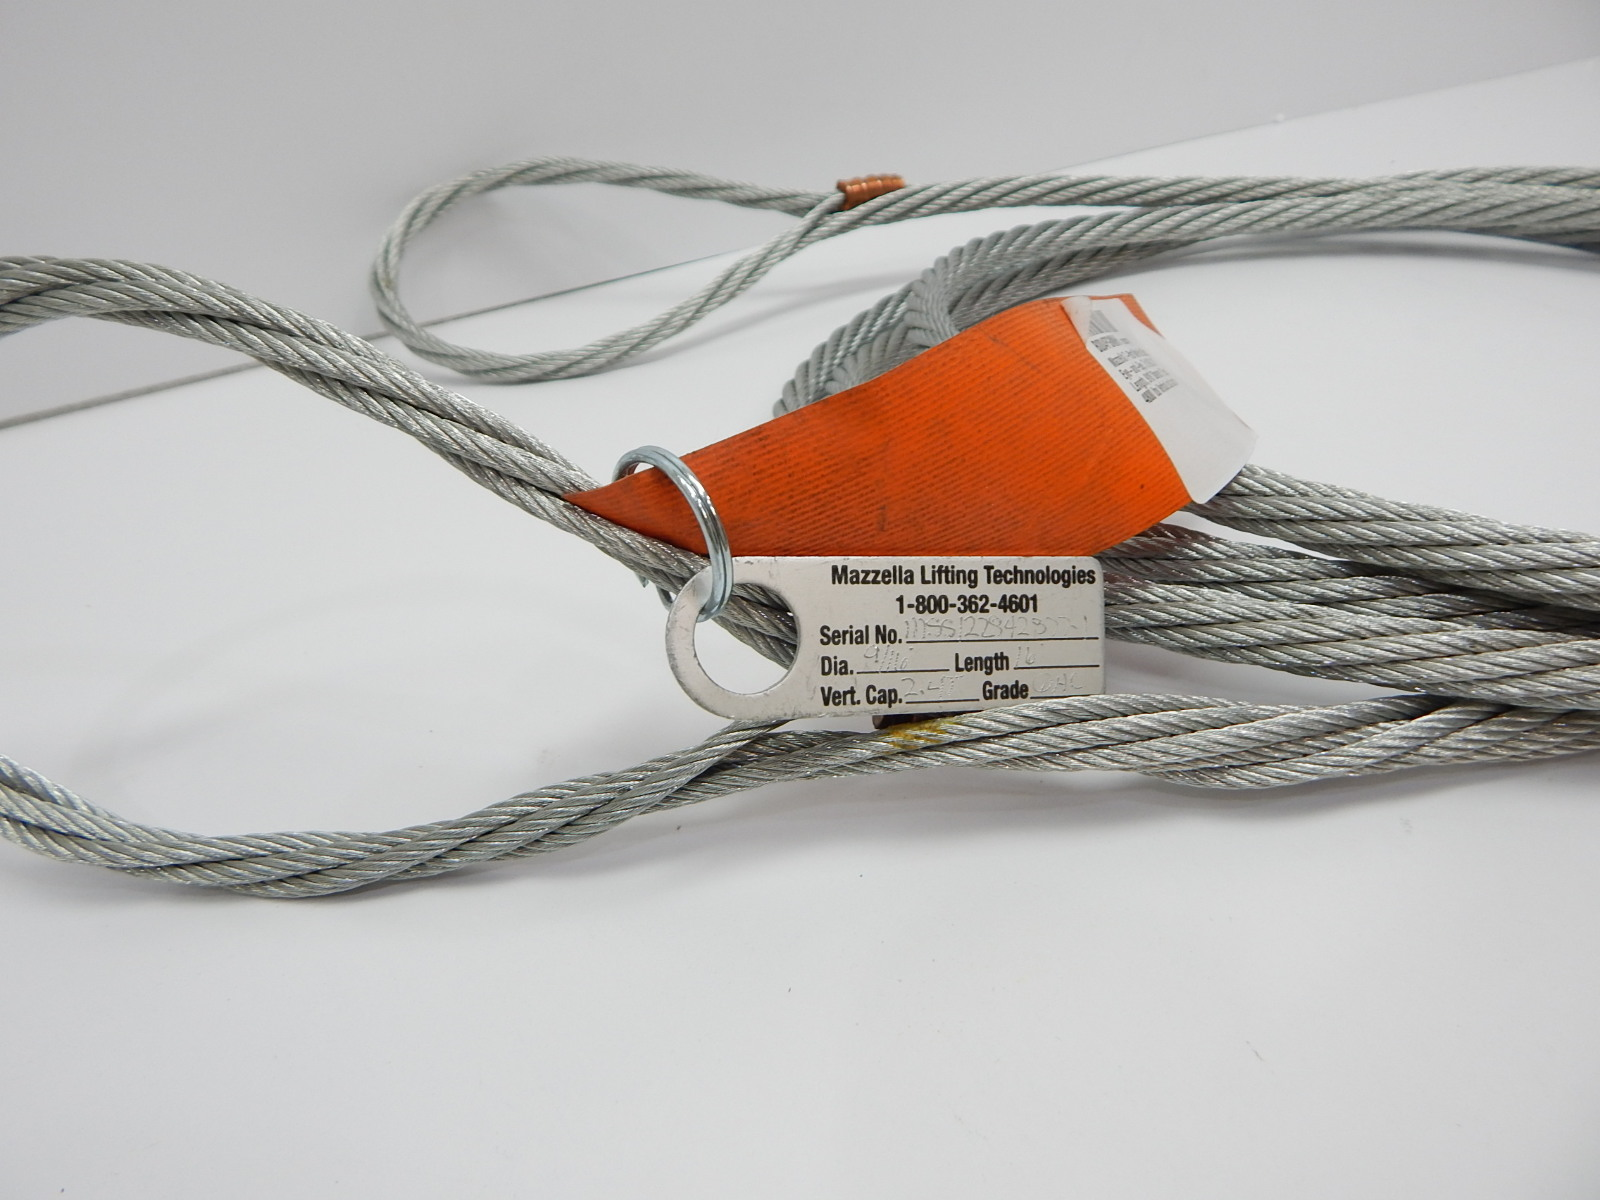 Mazzella 1200-501 7-Part Wire Rope Sling, Eye-and-Eye, 7 x 19 GAC ...